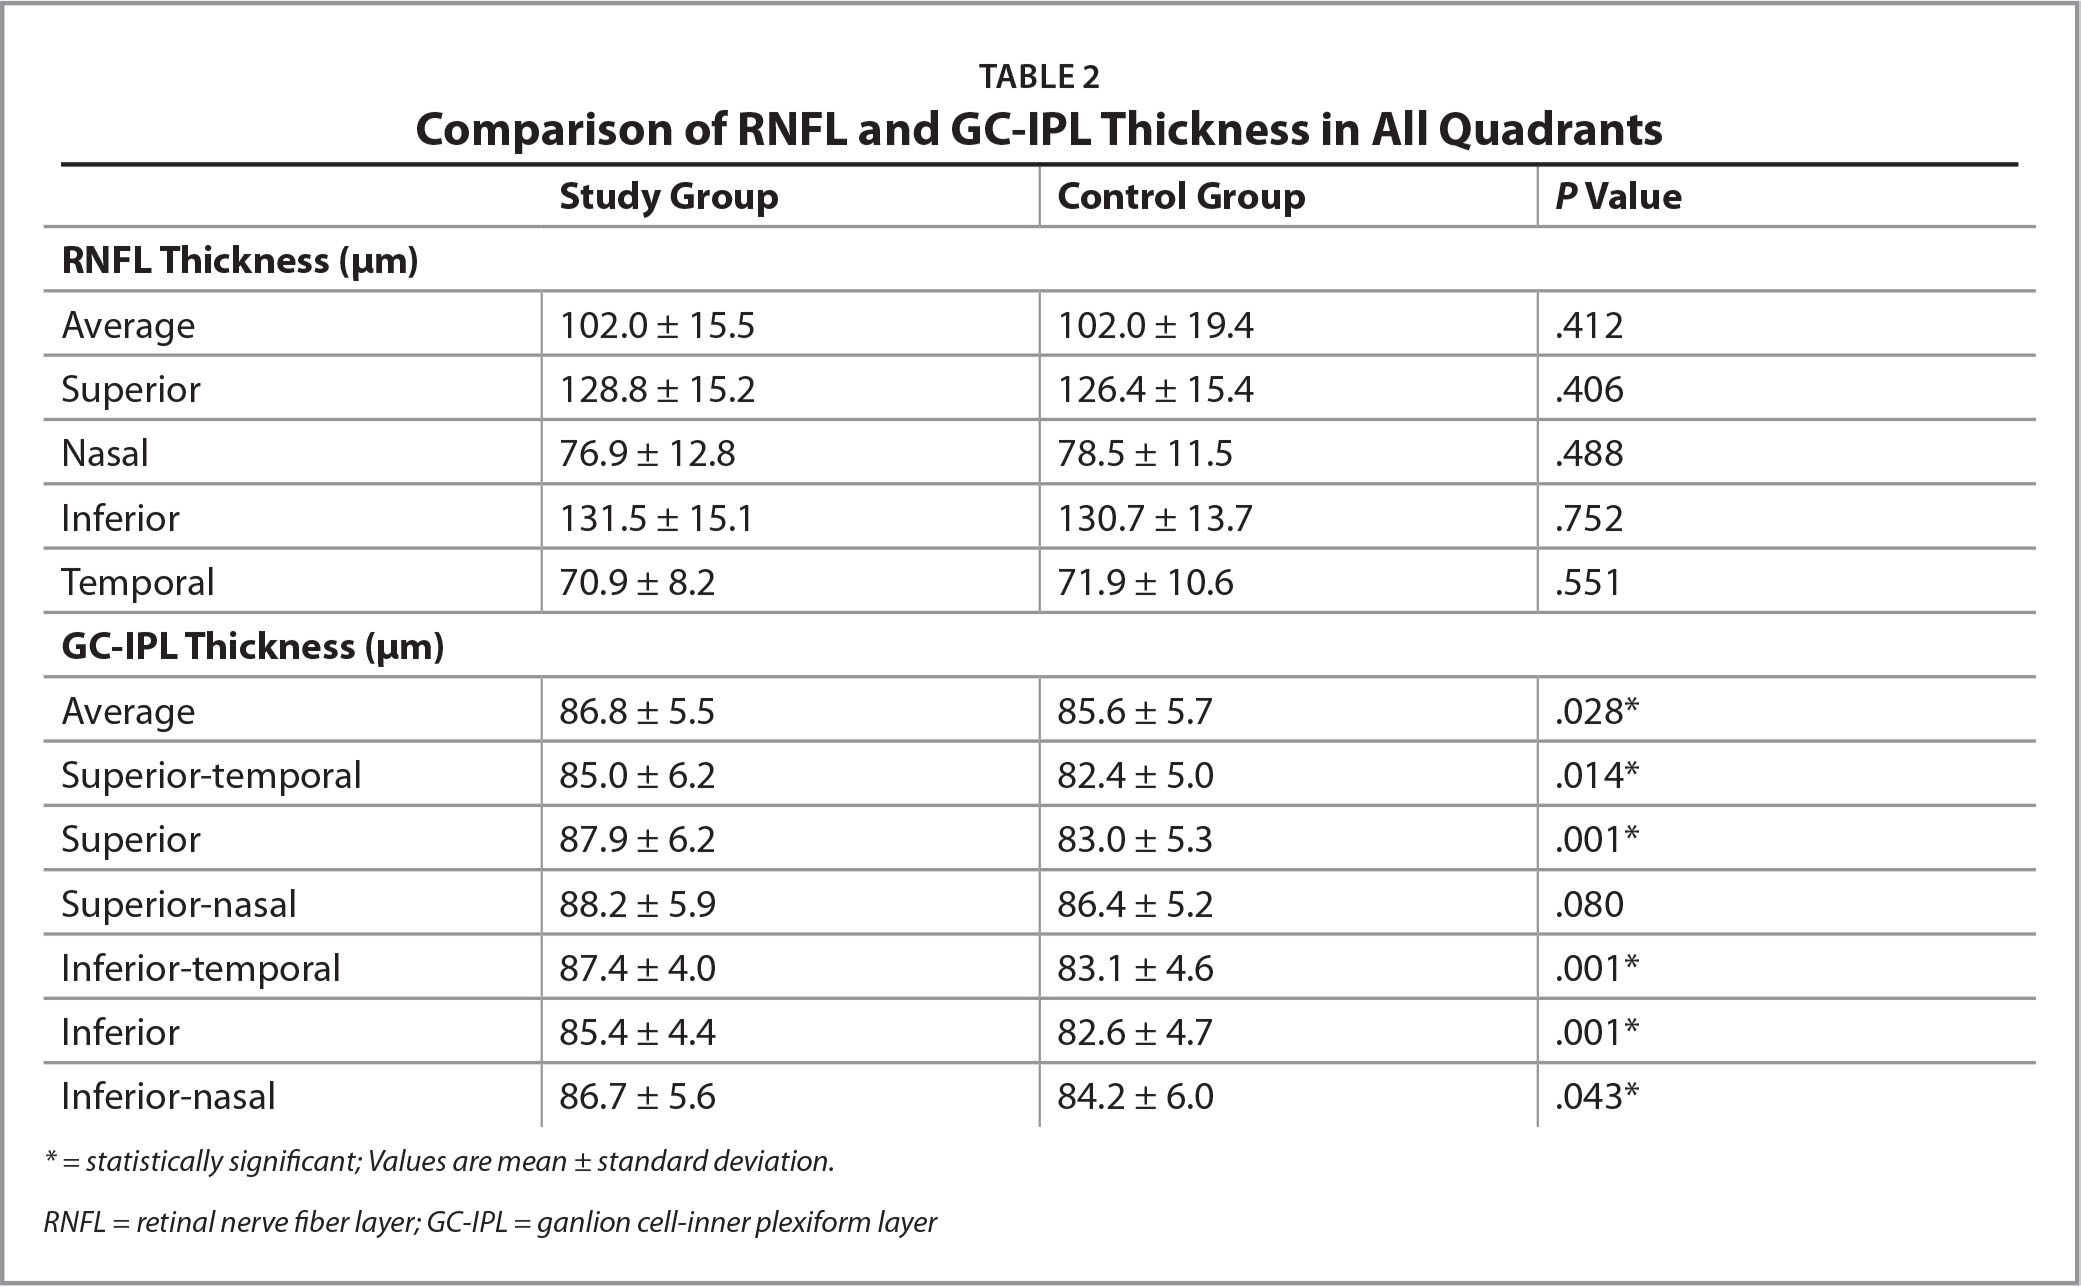 Comparison of RNFL and GC-IPL Thickness in All Quadrants